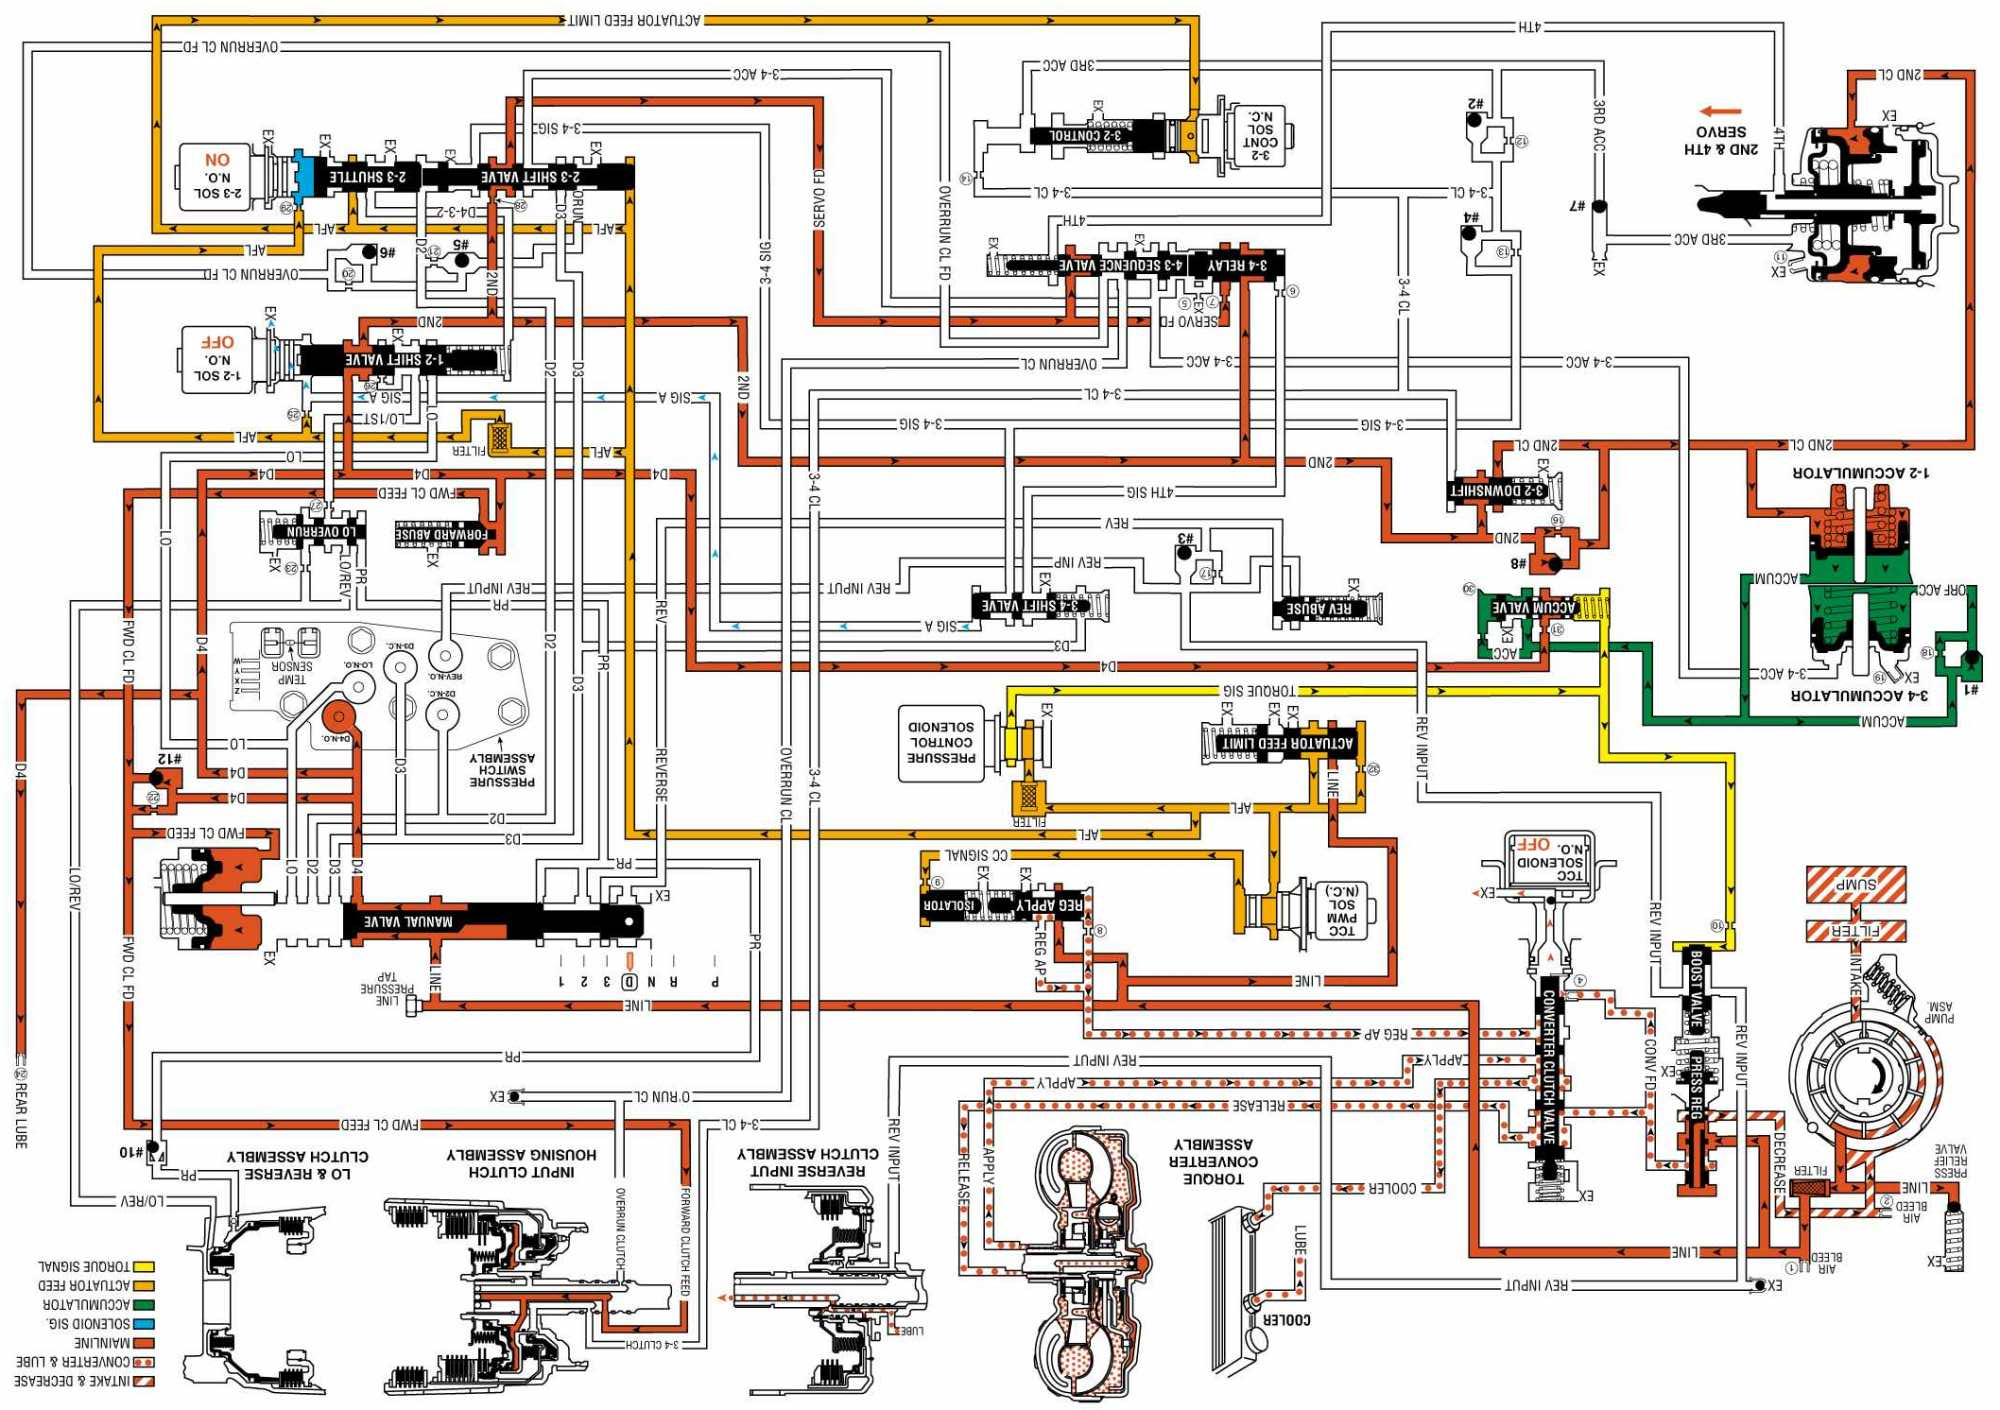 automatic transmission wiring diagram root cause analysis fishbone example 4l80e hydraulic we th400 diagrams thumbs